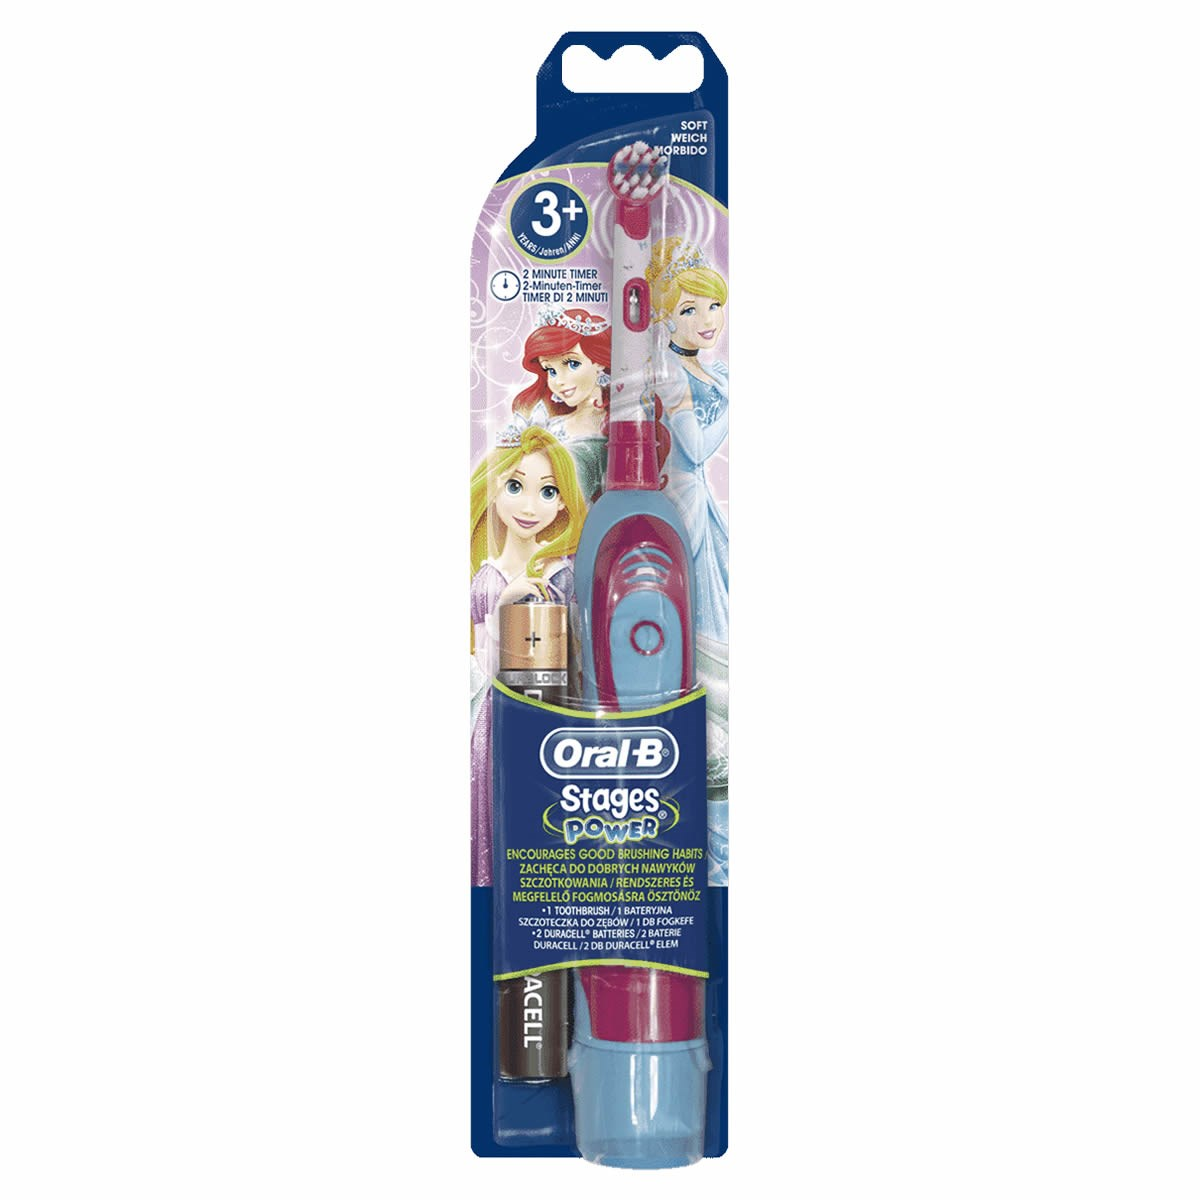 Oral-B Stages Power Kids Battery Toothbrush (3+ Years)